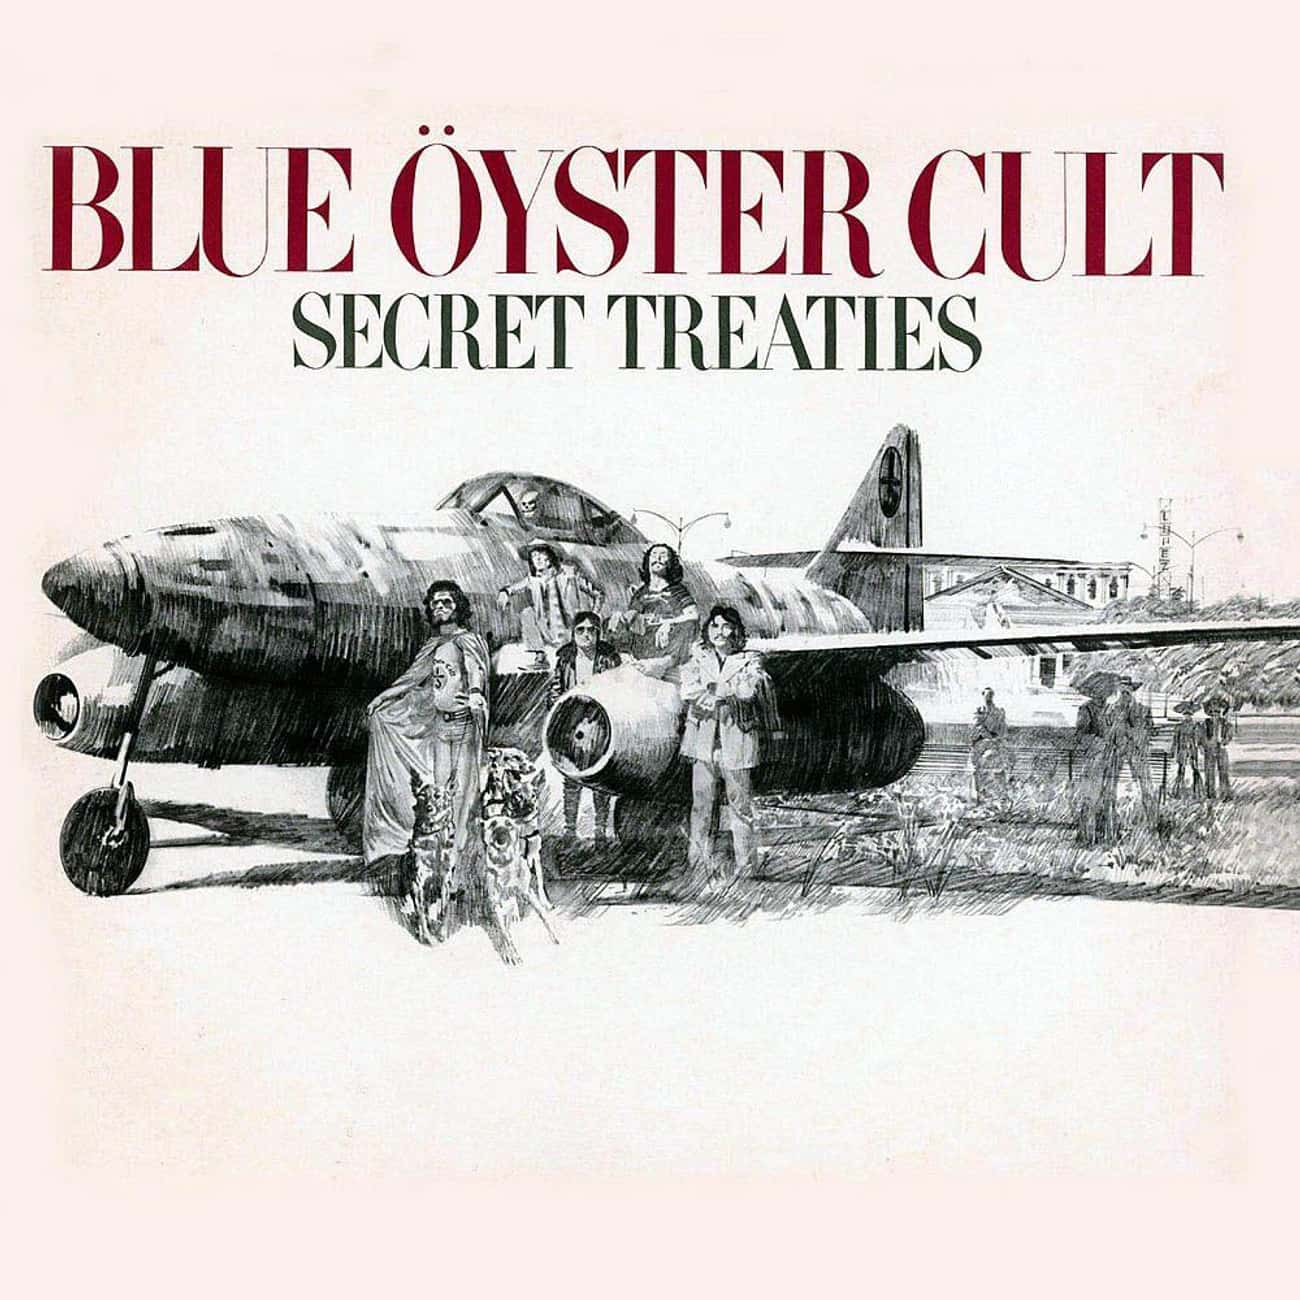 Secret Treaties is listed (or ranked) 2 on the list The Best Blue Öyster Cult Albums, Ranked